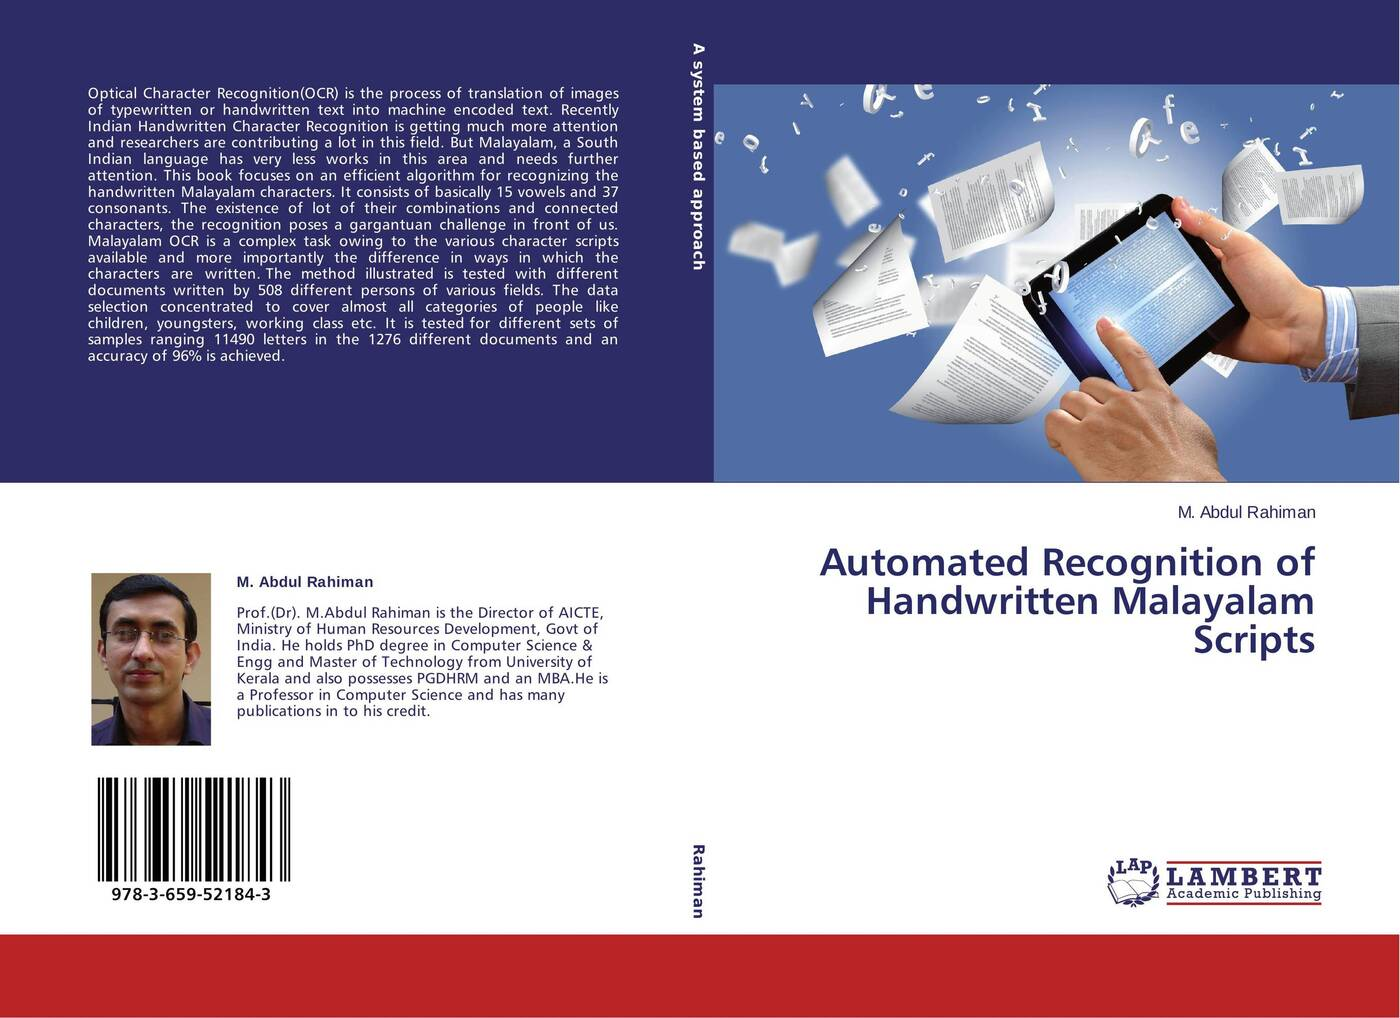 M. Abdul Rahiman Automated Recognition of Handwritten Malayalam Scripts automated recognition of handwritten malayalam scripts